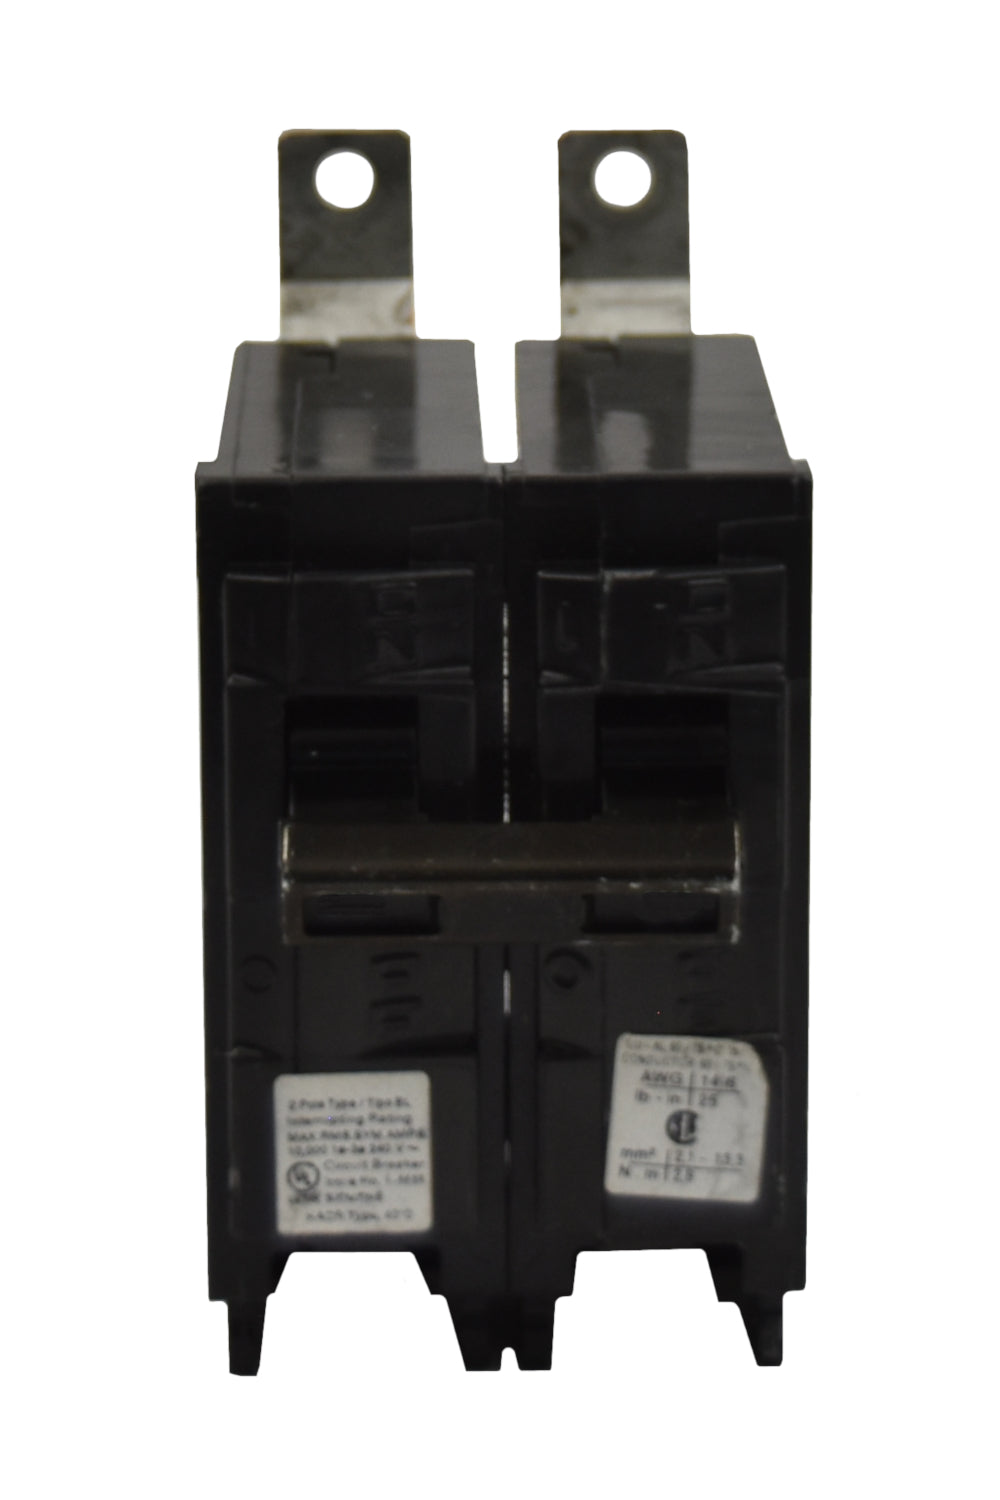 Siemens B240H Circuit Breakers Molded Case